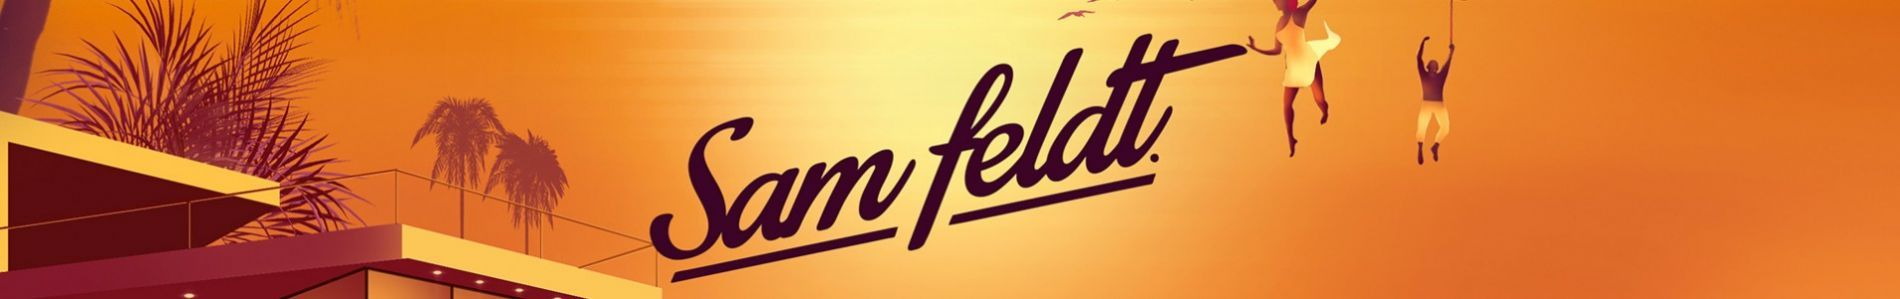 Win a limited edition Sam Feldt vinyl record!